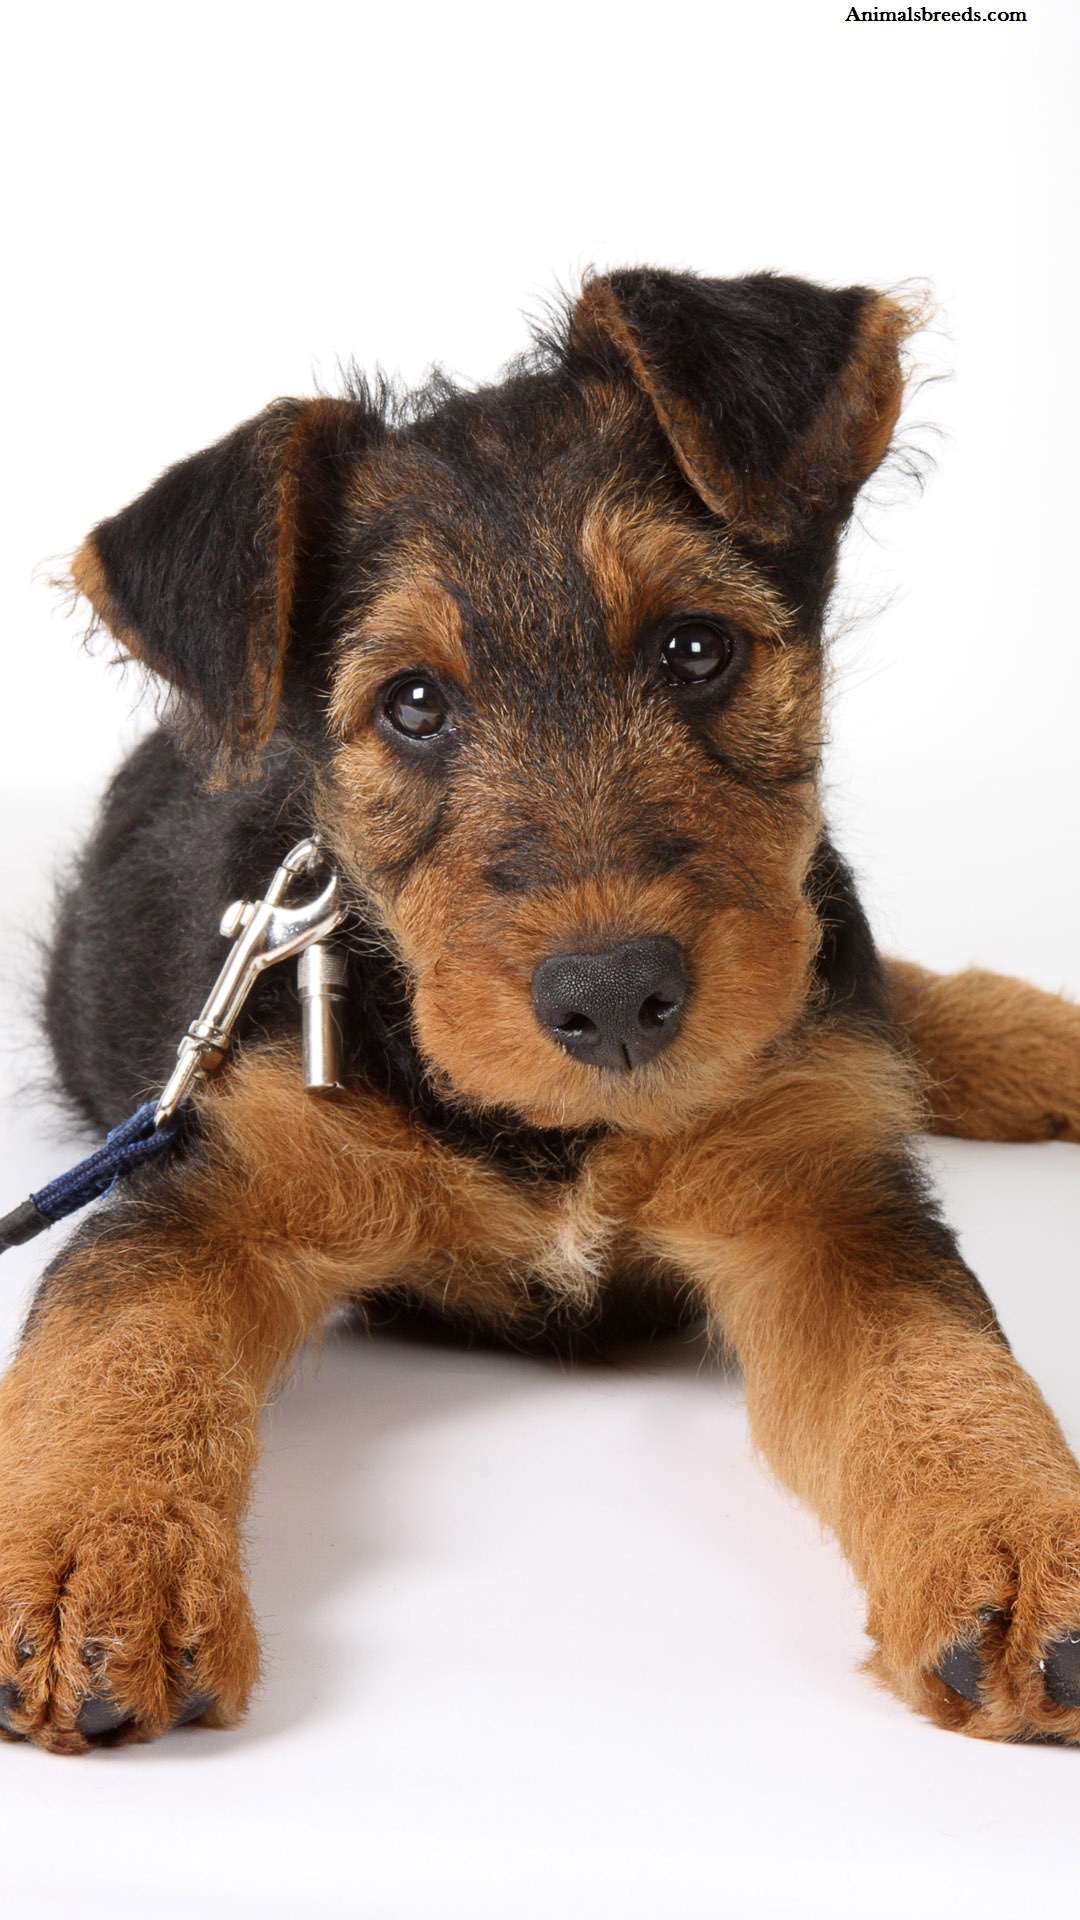 Airedale Terrier - Puppies, Rescue, Pictures, Information ...